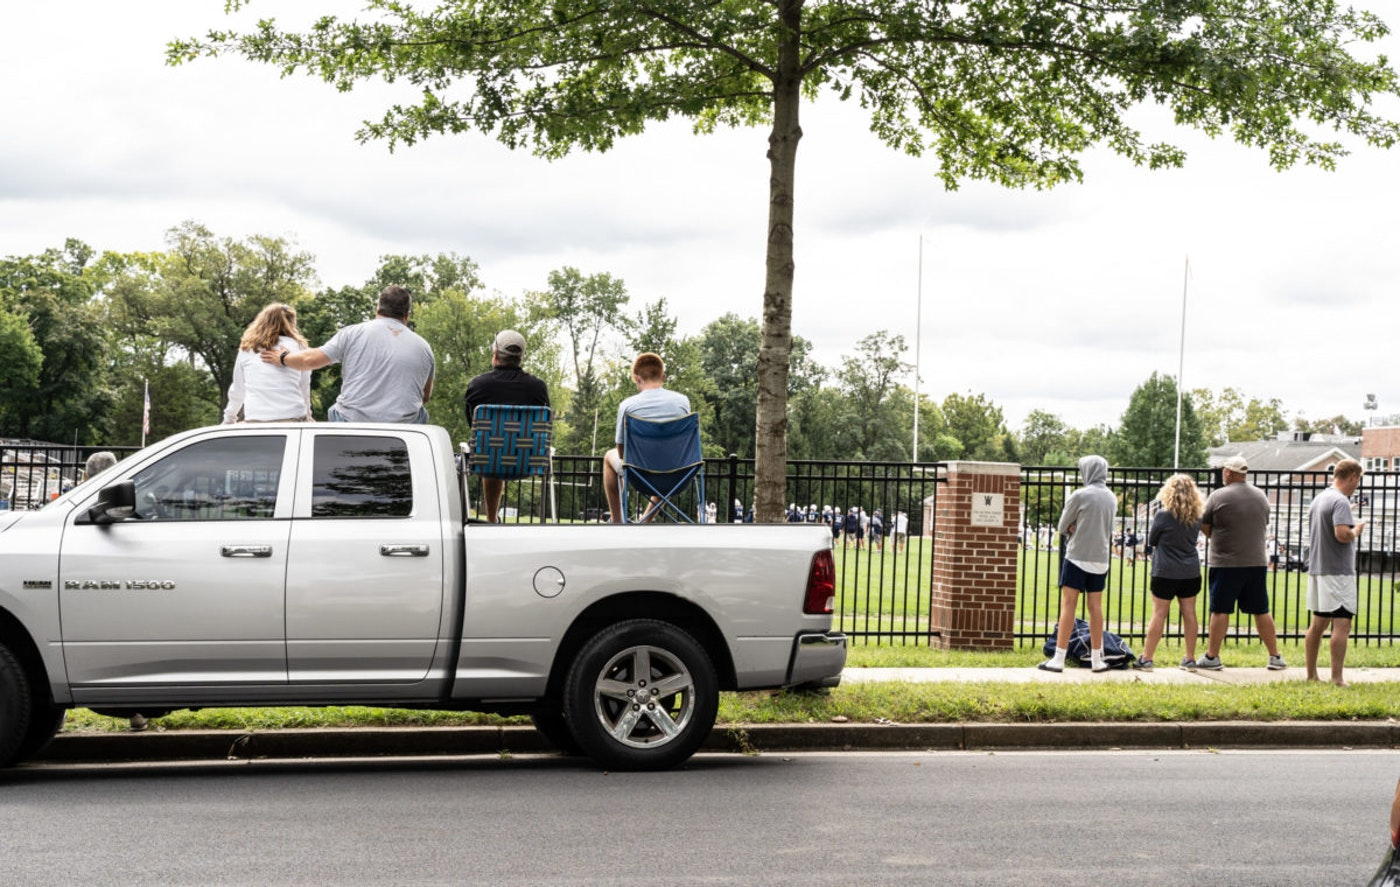 Fans watch a football game from outside a stadium in Berks County on Sept. 12, 2020, as crowds are limited at sporting events in Pennsylvania. (Shutterstock Image/Amy Lutz)